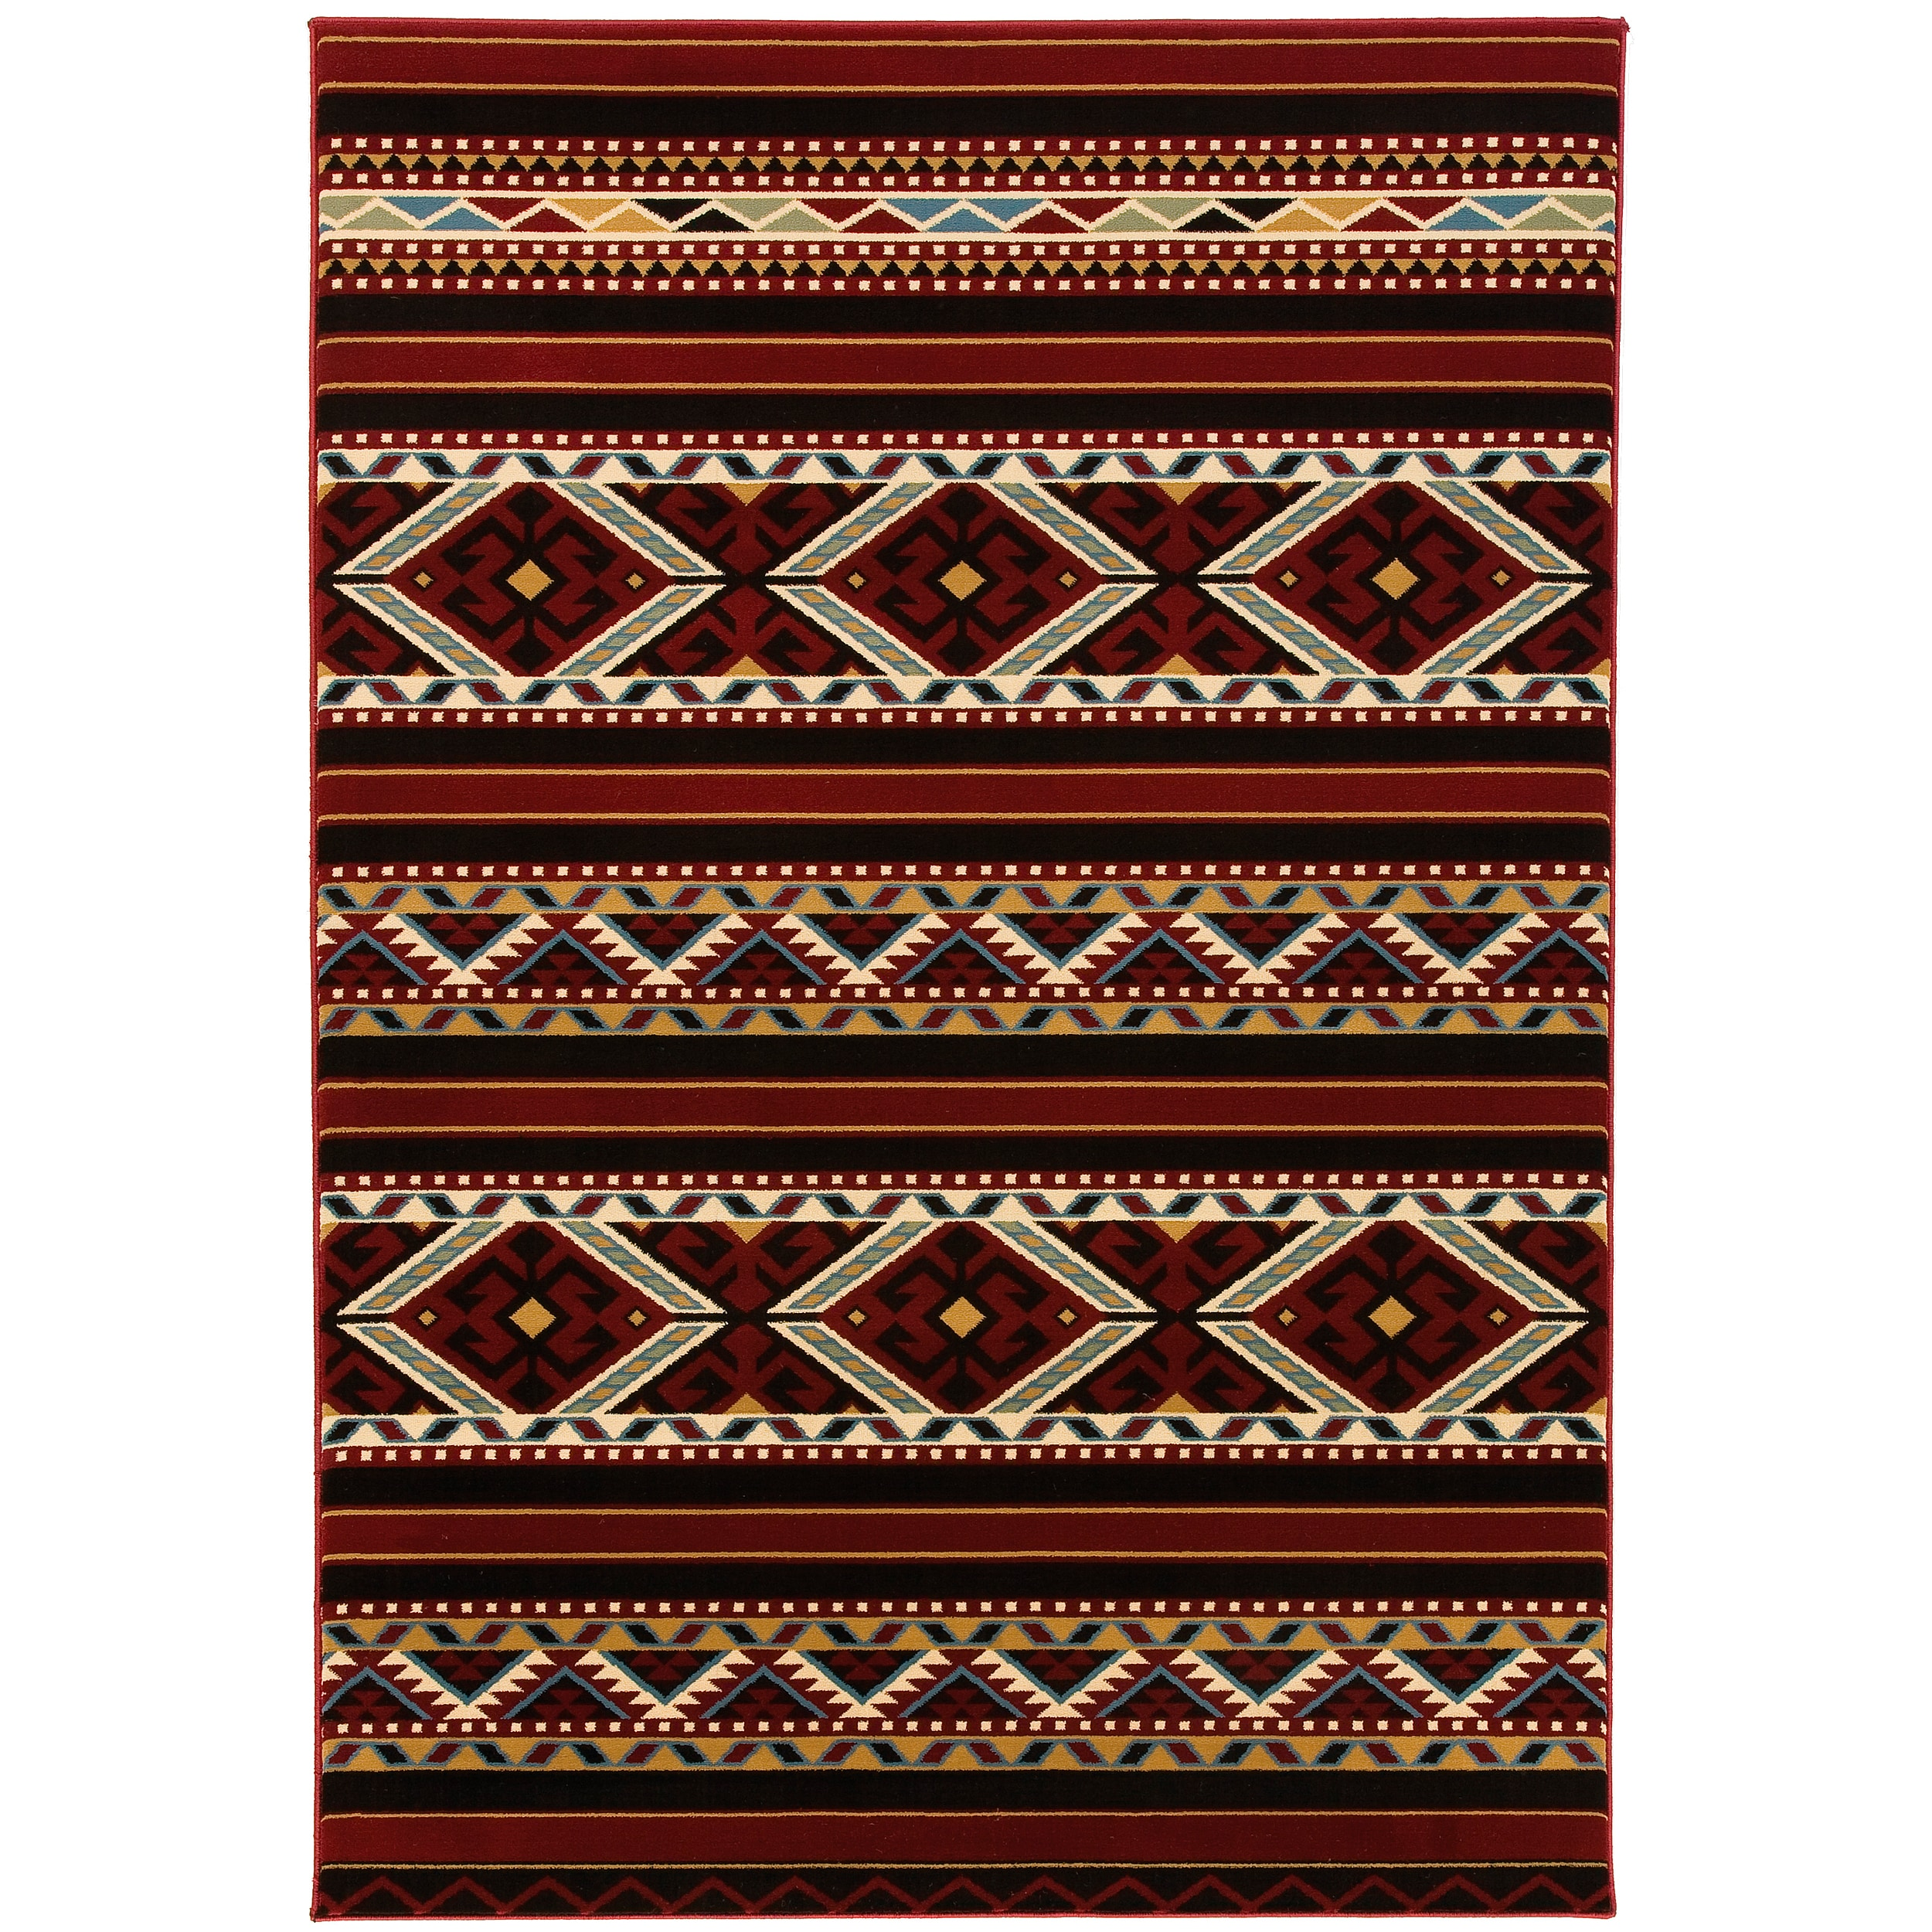 Shop Dick Idol Meticulously Woven Southwestern Aztec